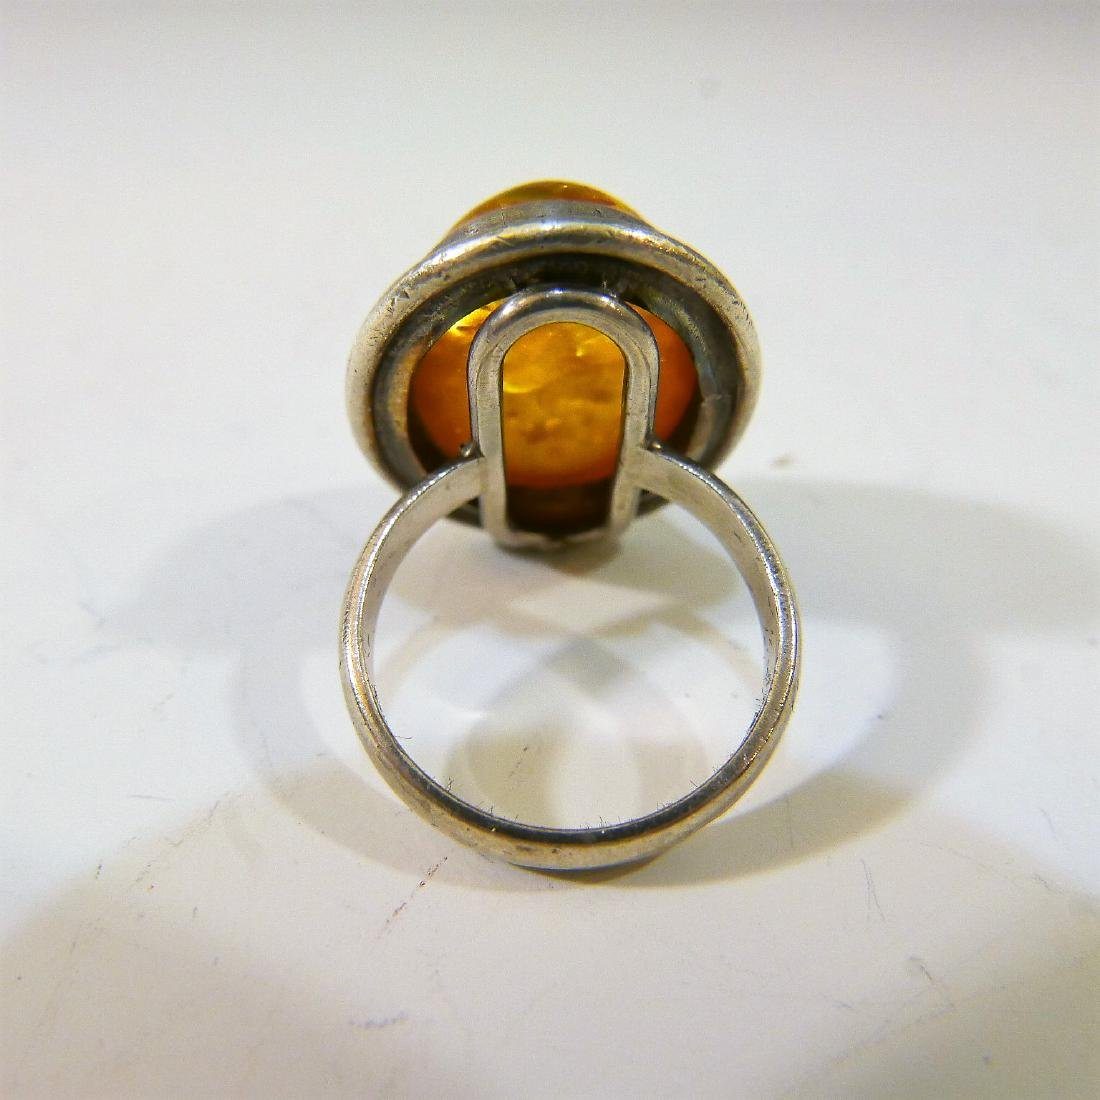 STERLING SILVER AMBER RING - 4